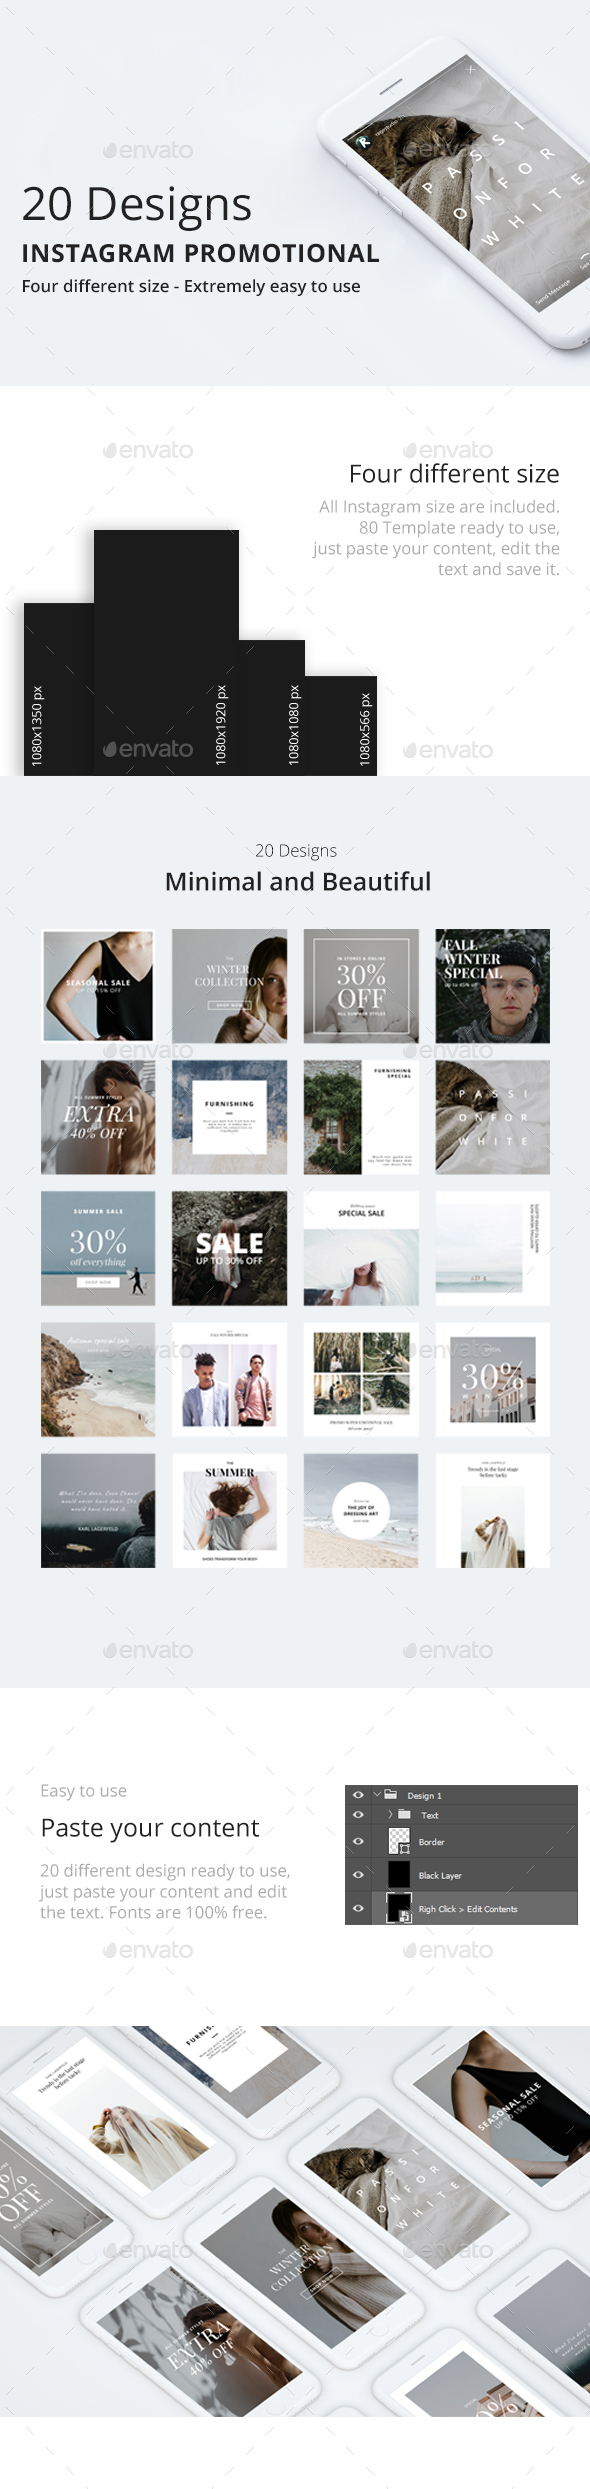 20 Instagram Promotional Template - Social Media Web Elements